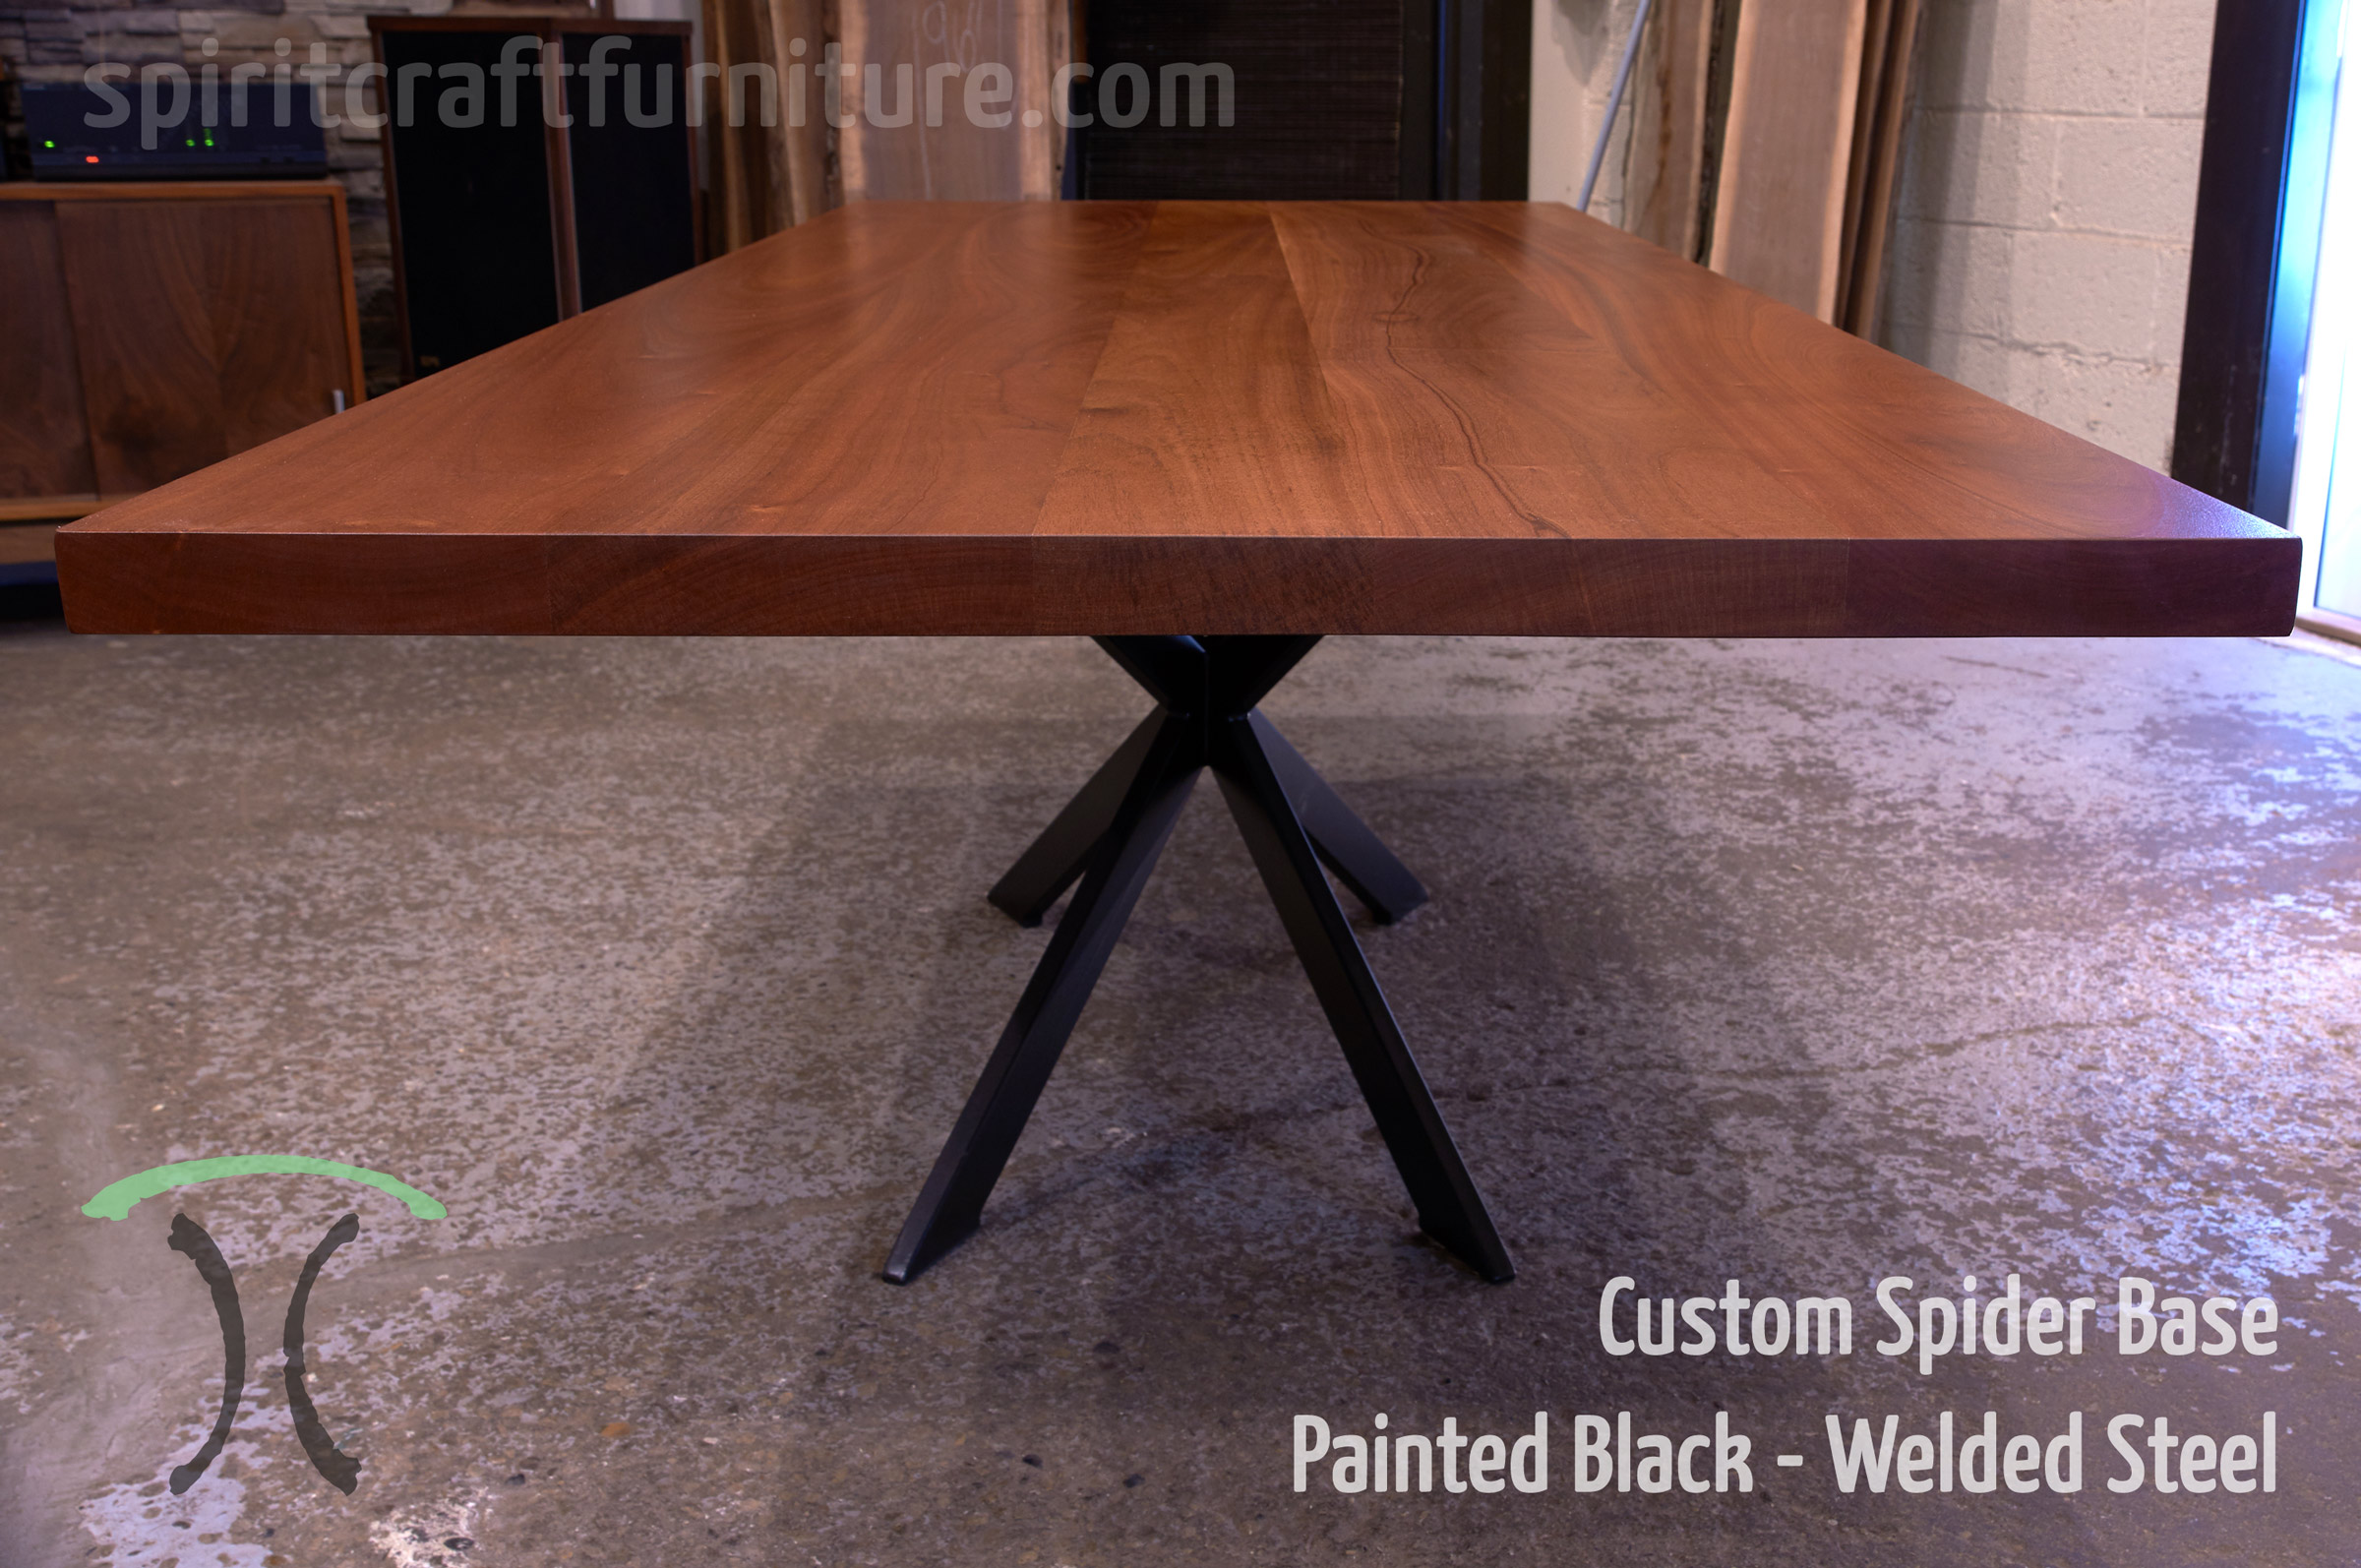 Custom made 1 x 3 profile spider table base, steel painted black with sapele slab table top.